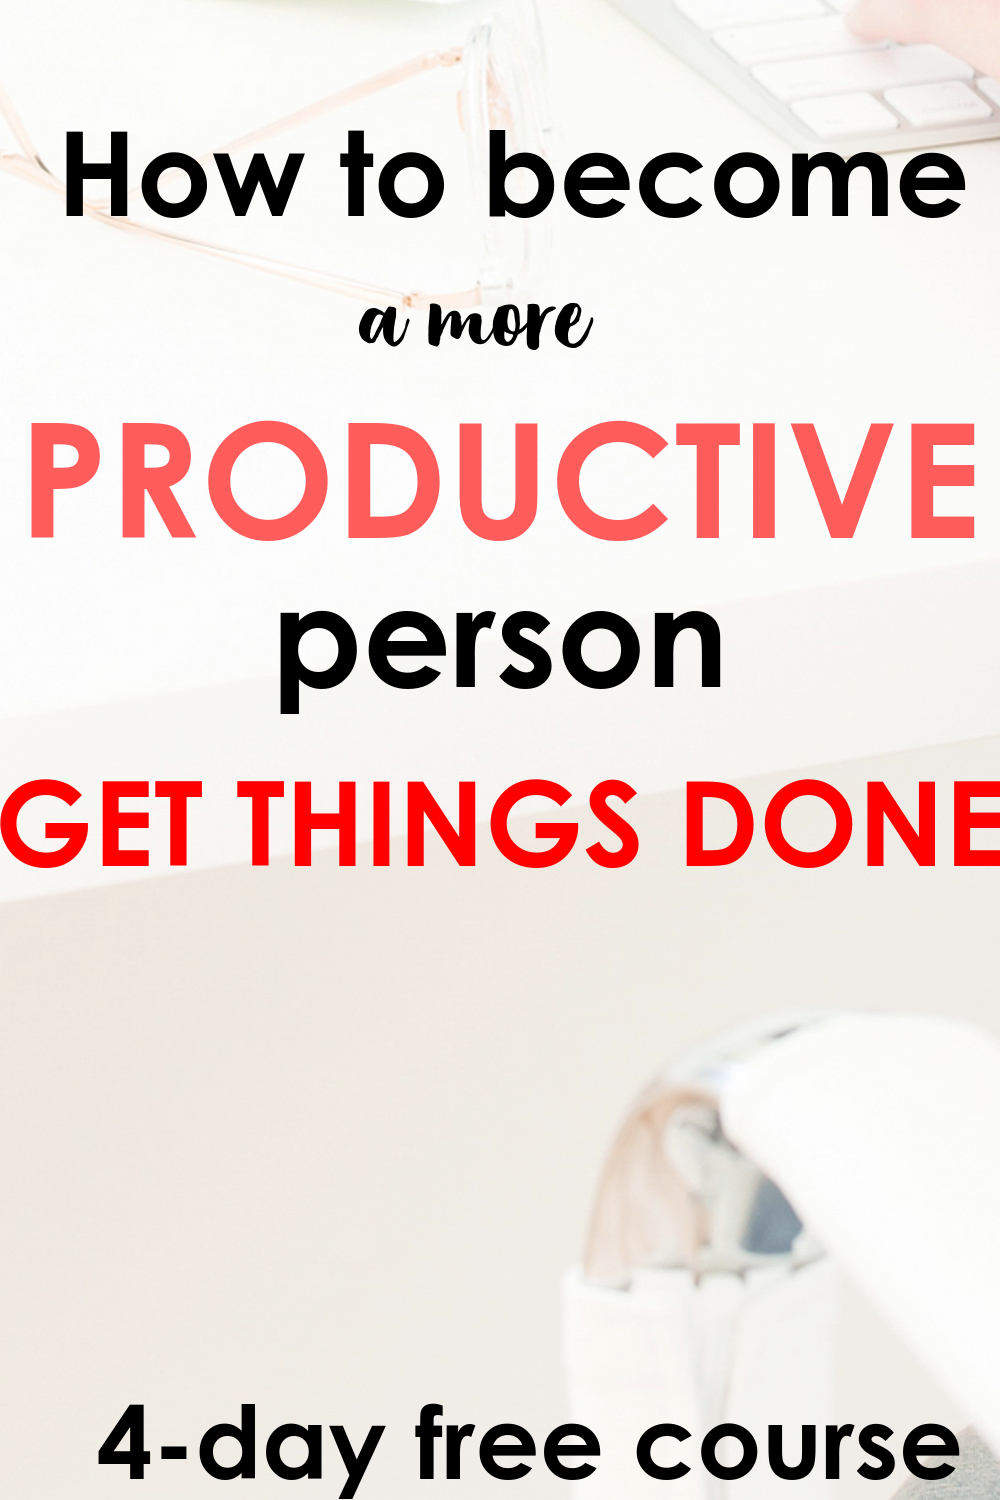 Want to achieve your goals and get things done every day? Check out this article on how to be and stay productive, Productive Things to do / Productive morning routine /Productive day, quotes, tips, hacks, Productive motivation/self-improvement quotes, tips, ideas, challenge, Personal growth motivation/ Productive habits, #productive #planner, get productive, personal development, #productive #productivity #goals #winter #fall #autumn #halloween #girlboss #habits #bosslady #personalgrowth